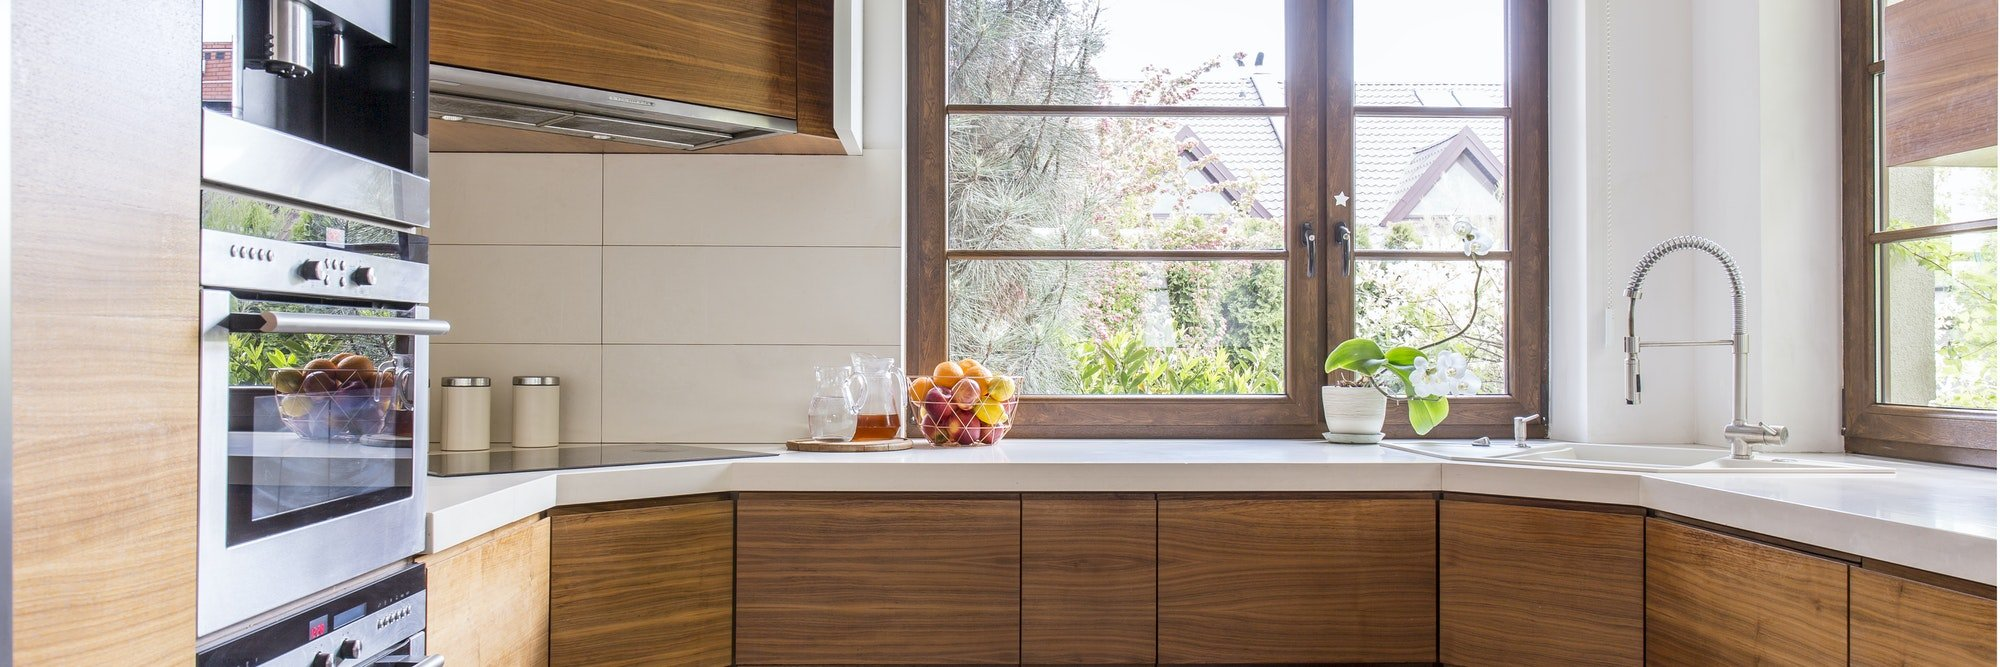 Wooden cupboards in classic kitchen